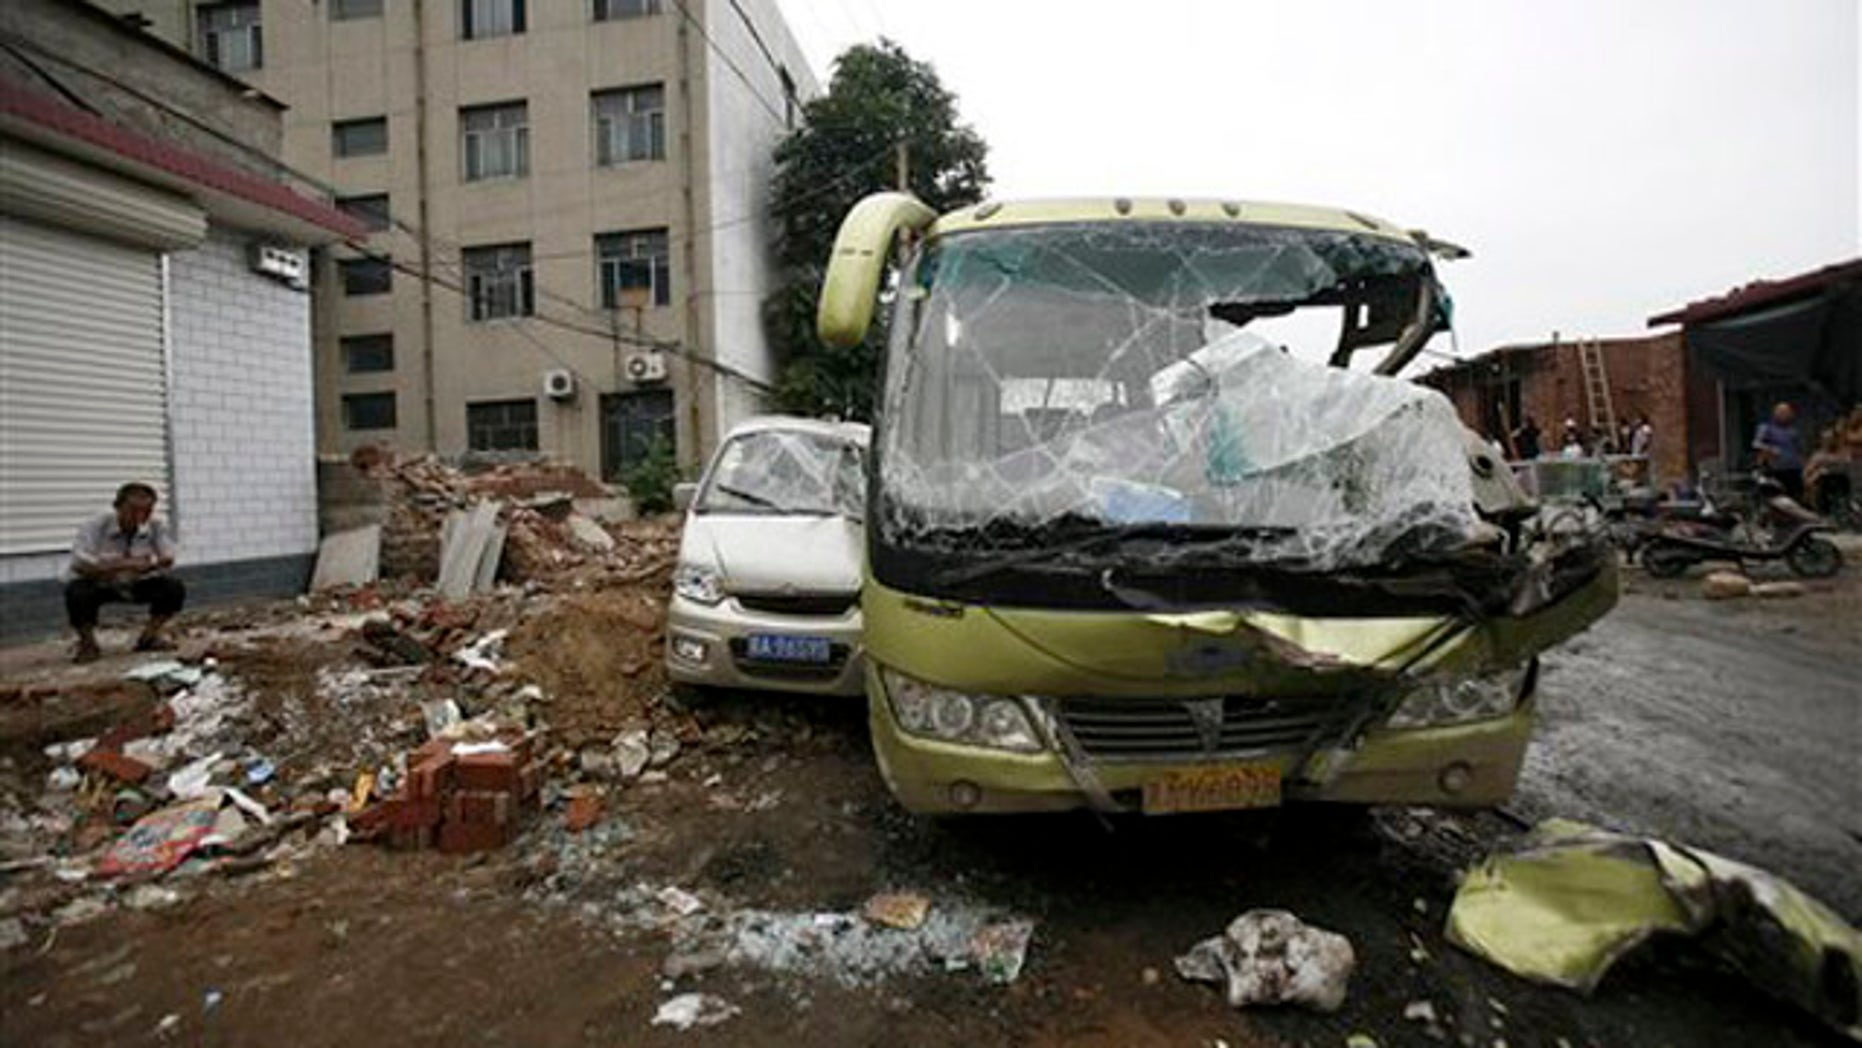 Aug. 1, 2010: Man smokes near smashed vehicles at Yuanshi county, in north China's Hebei province. A drunken shovel loader driver went on a rampage in northern China, smashing into shops and vehicles and killing 11 people, a government spokesman said Monday.